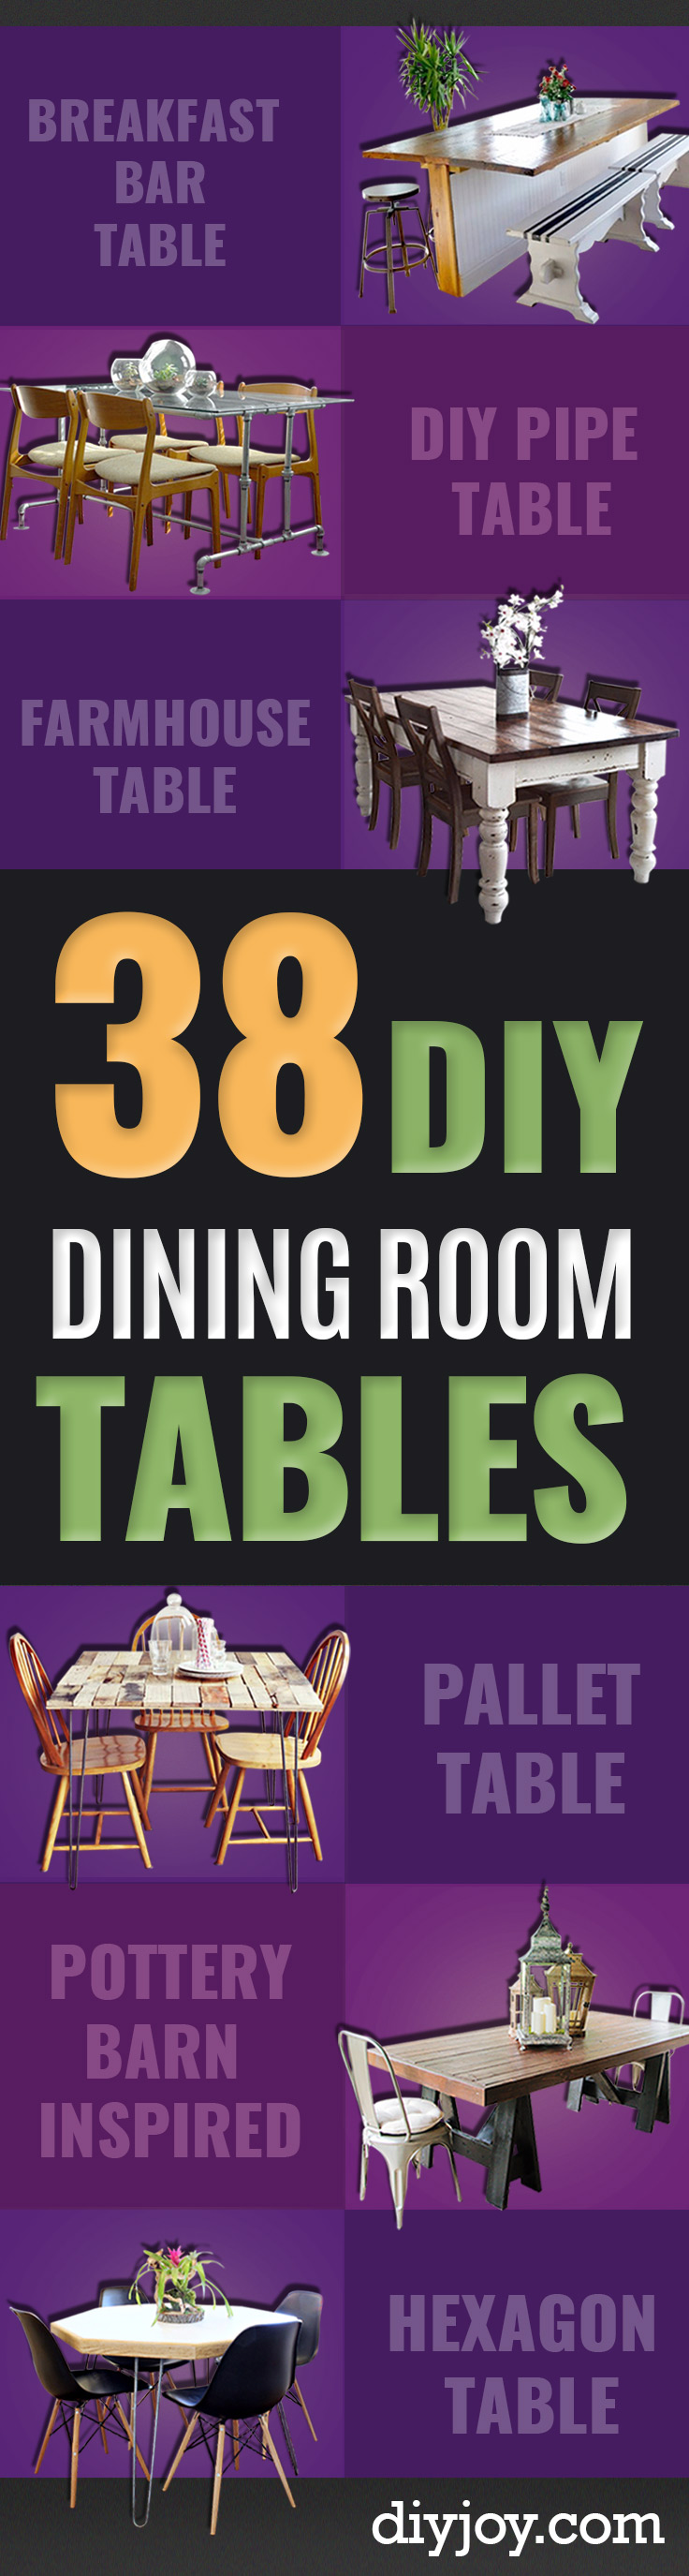 38 diy dining room tables diy dining room table projects creative do it yourself tables and ideas you can make solutioingenieria Choice Image